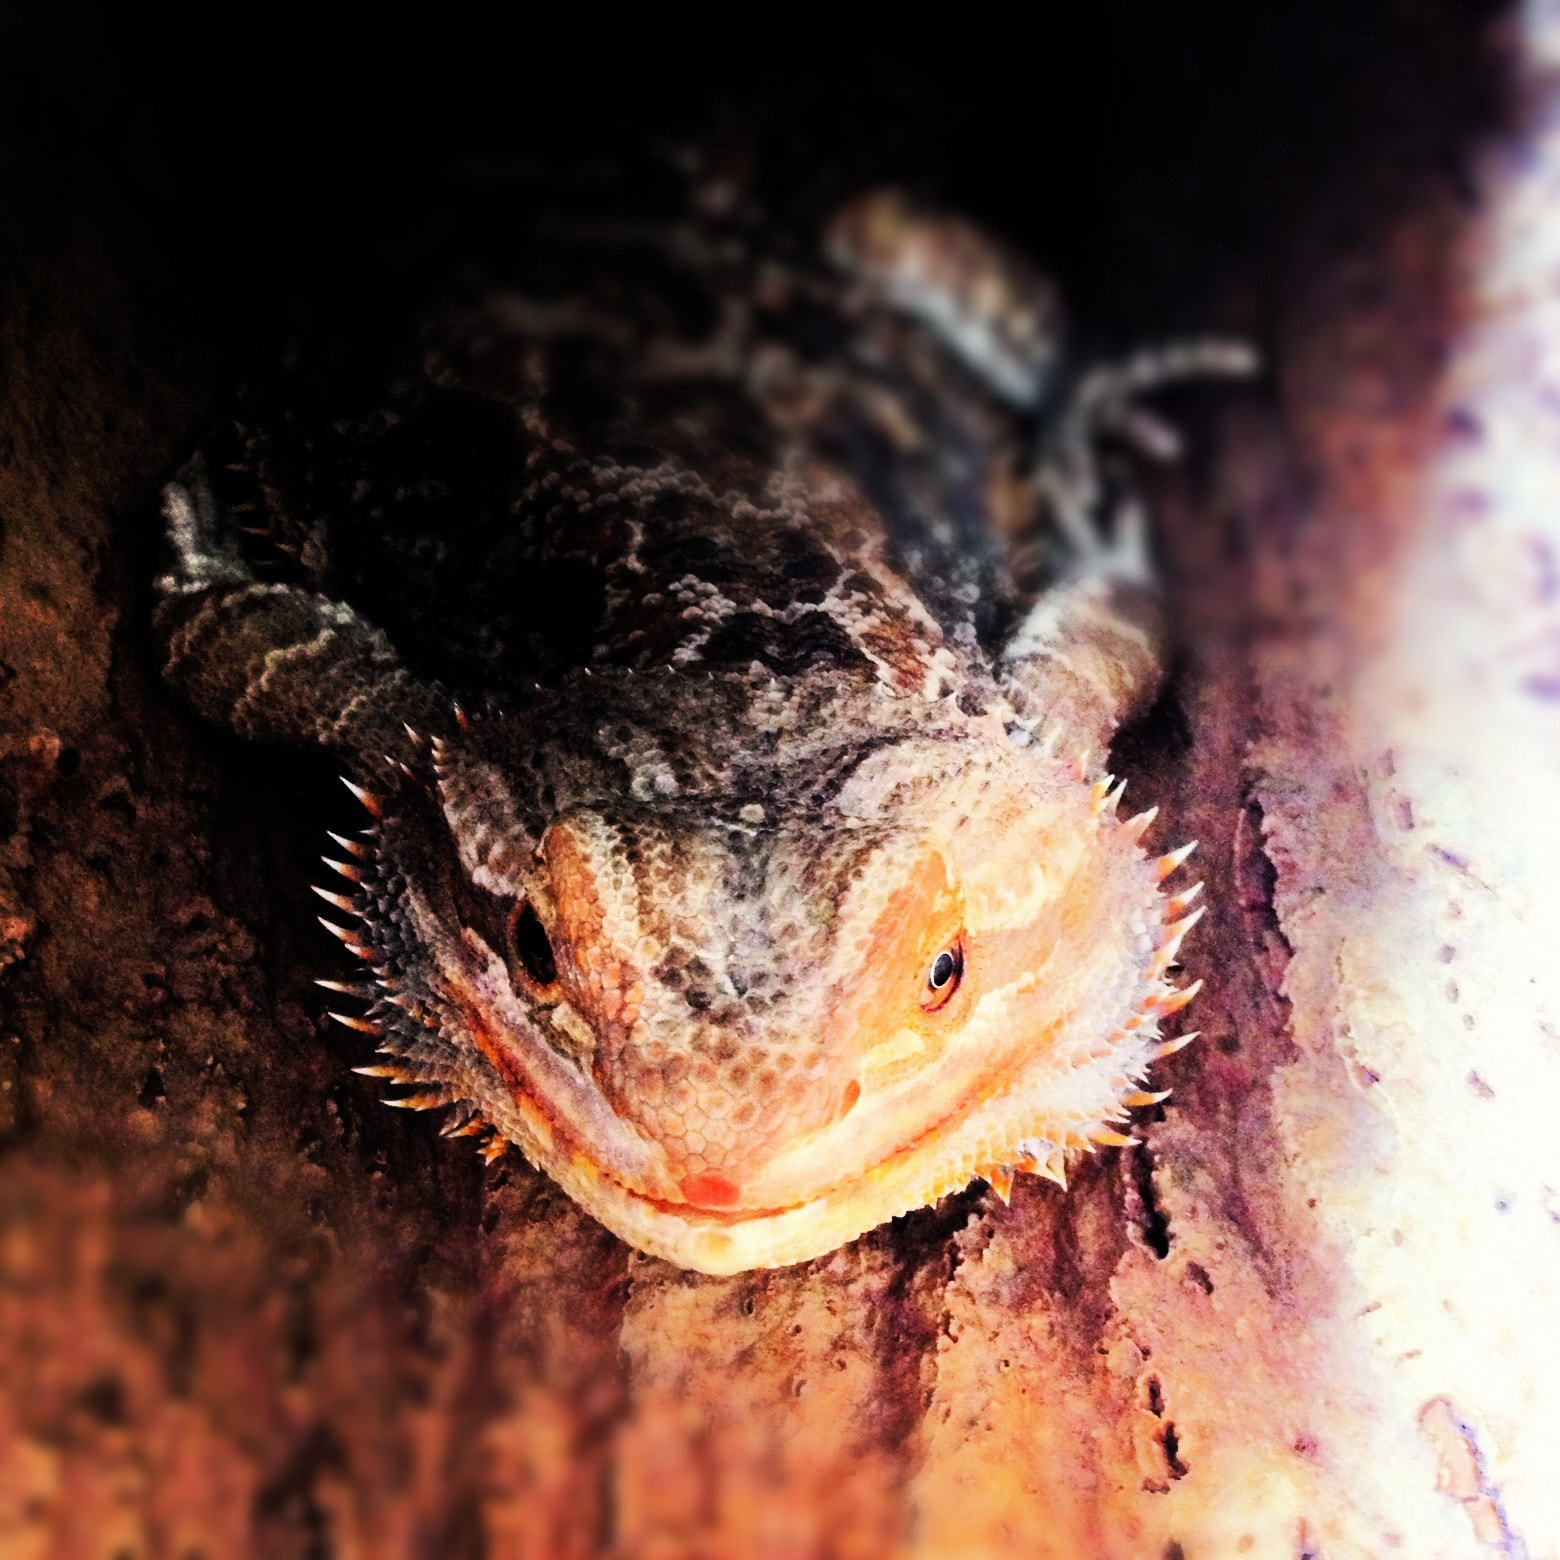 Photograph Pixel the Bearded Dragon by Dave Hornsby on 500px